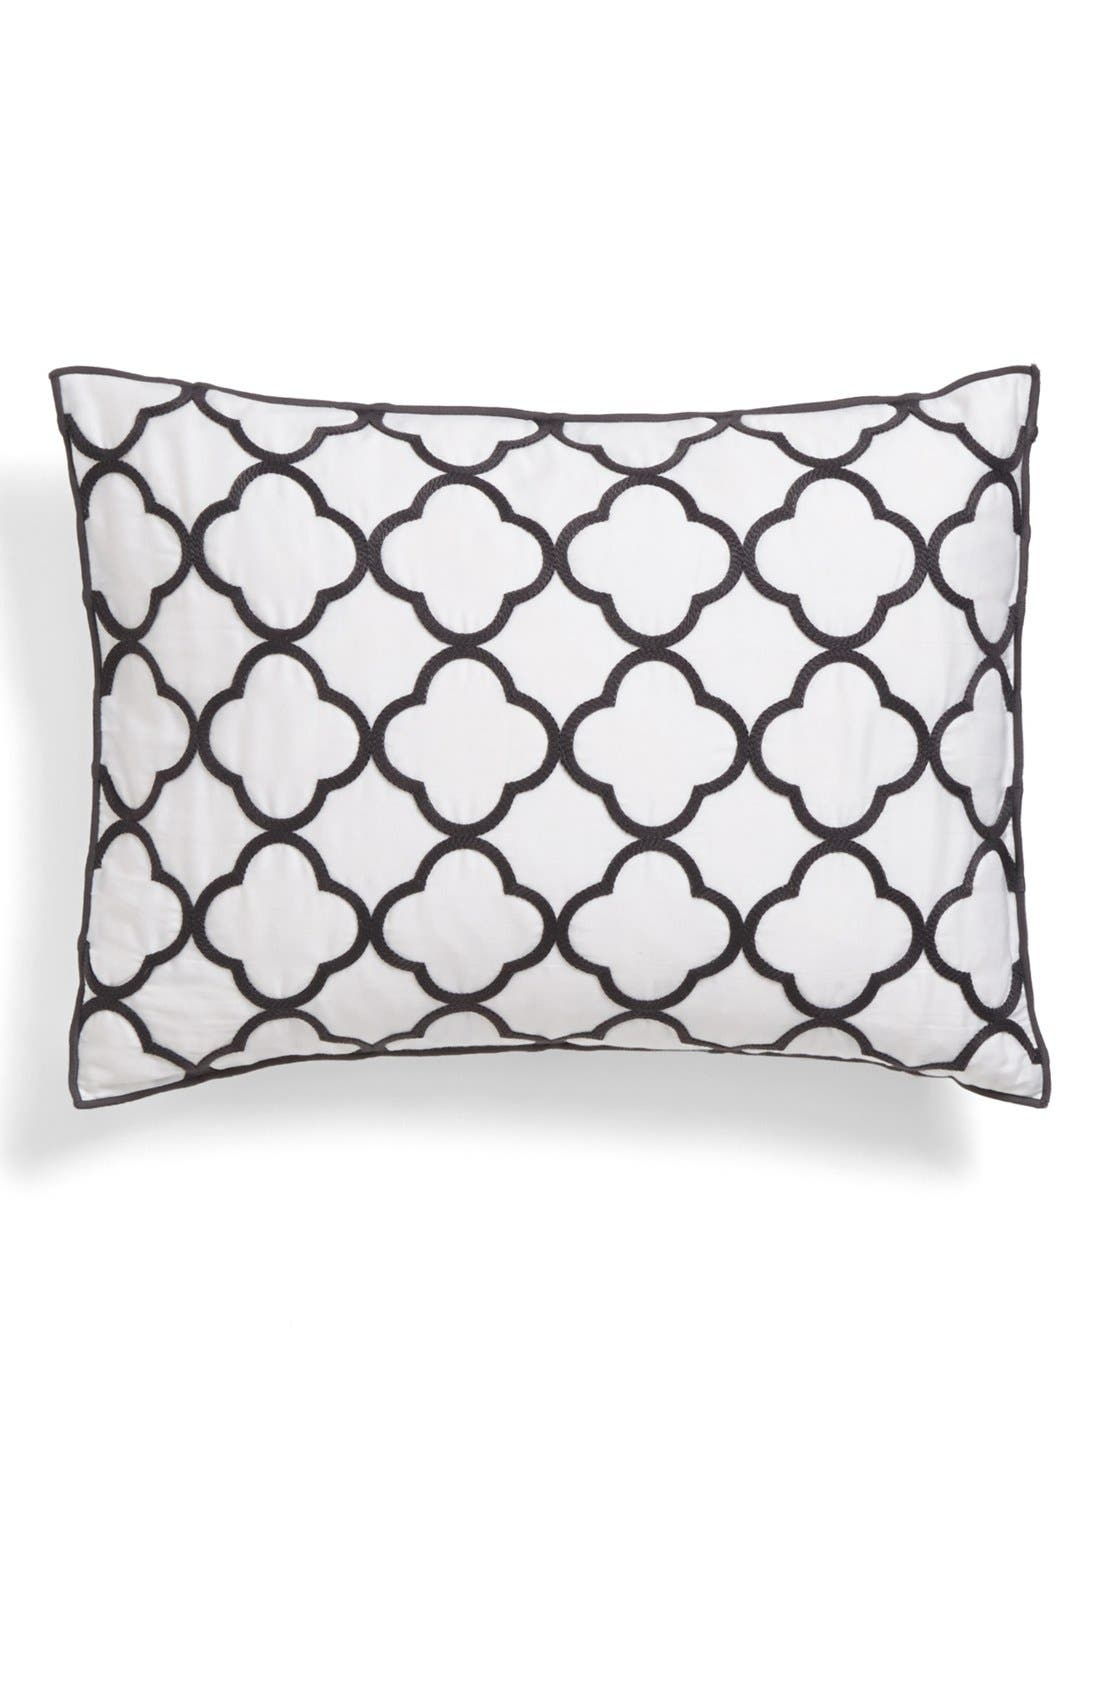 Main Image - Vera Wang 'Pompom' Pillow